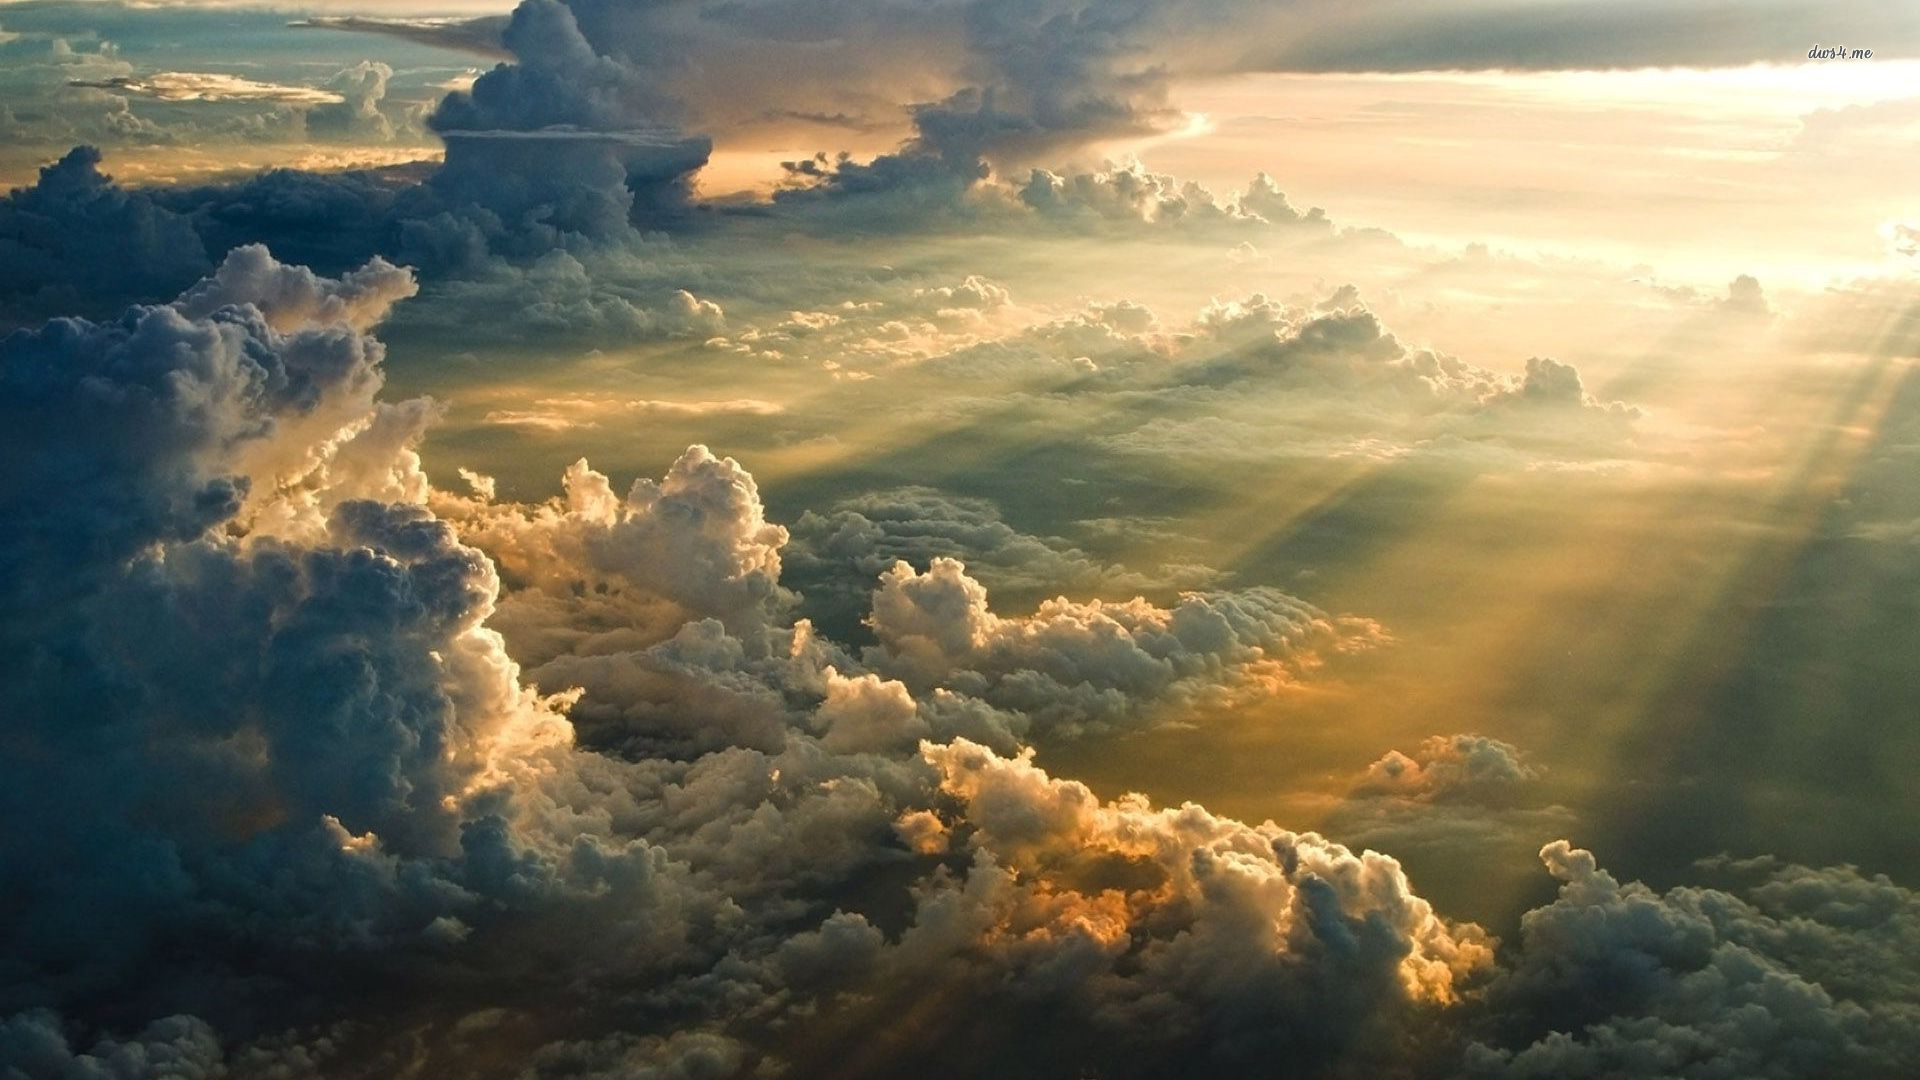 Collection of Clouds Wallpaper on HDWallpapers